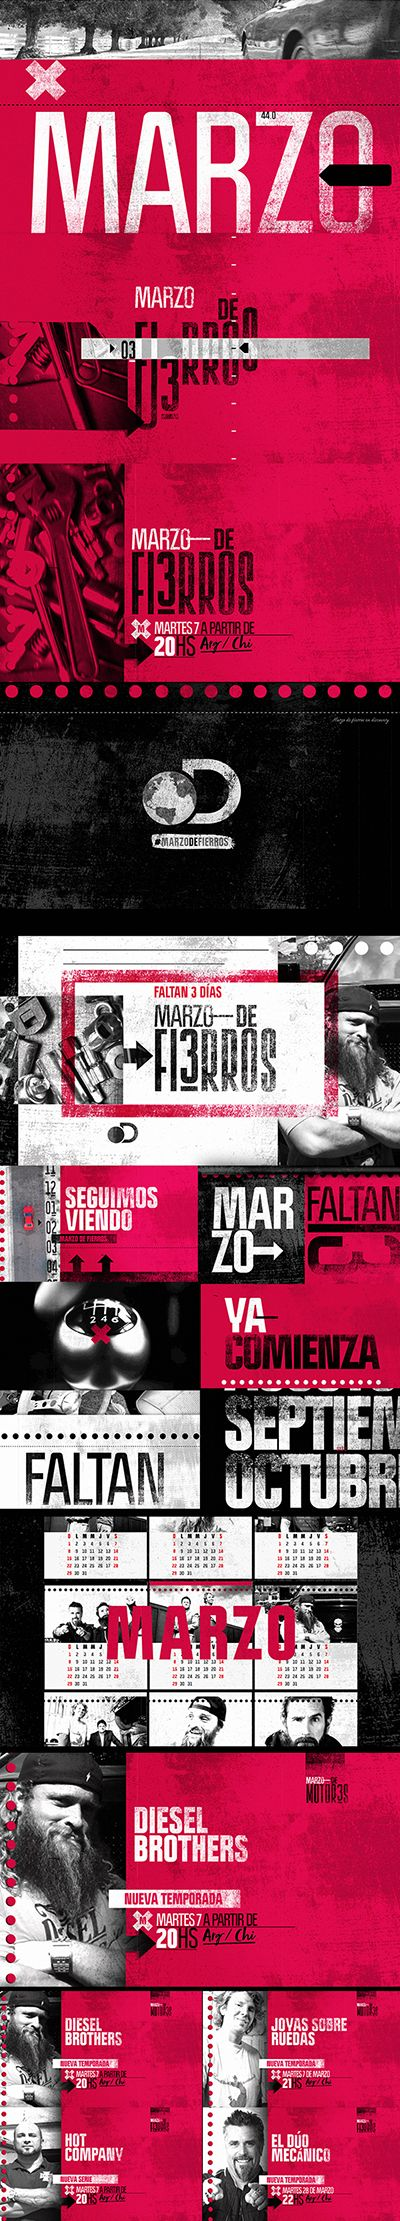 Marzo de fierros: this is a special package for Marzo de Fierros for discovery channel argentina. Portfolio Diego Troiano. Currently working in Discovery Latin Channels.  Script: Mariano Bonini. Edit & Music: Mauro Bragato.  Design & animation: Diego Martín Troiano. All work is owned by Discovery Latin American Channels.